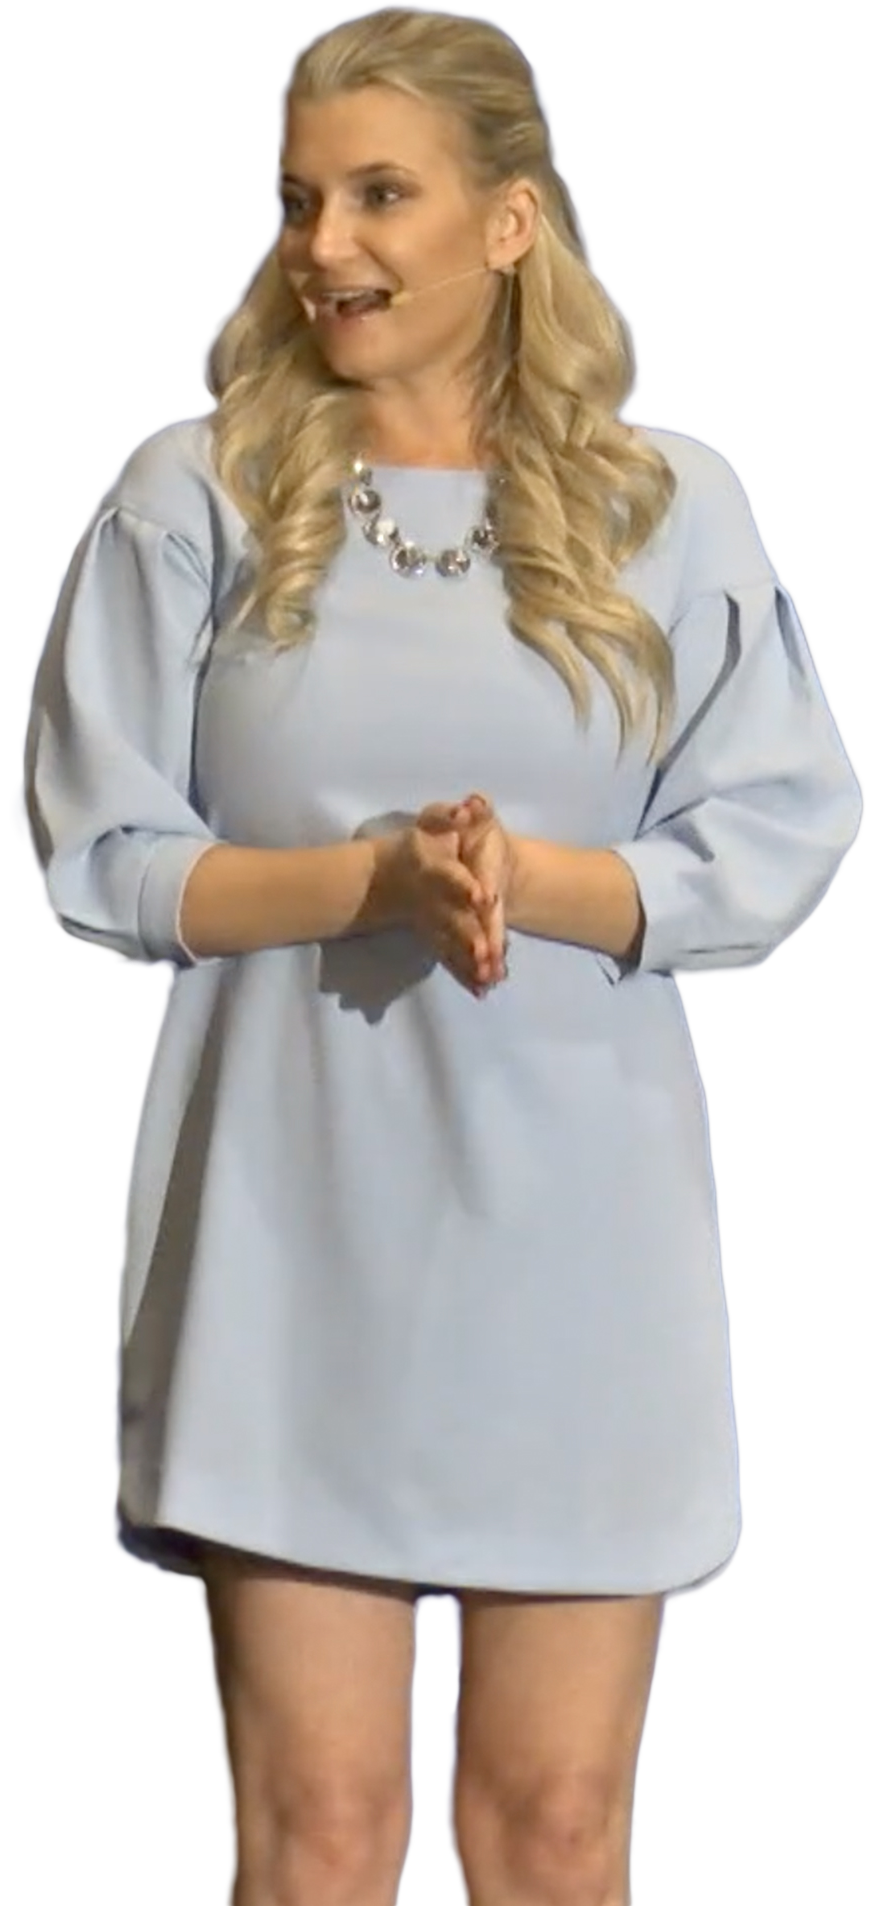 a woman in a blue dress with blonde hair speaking about Med Spa Marketing